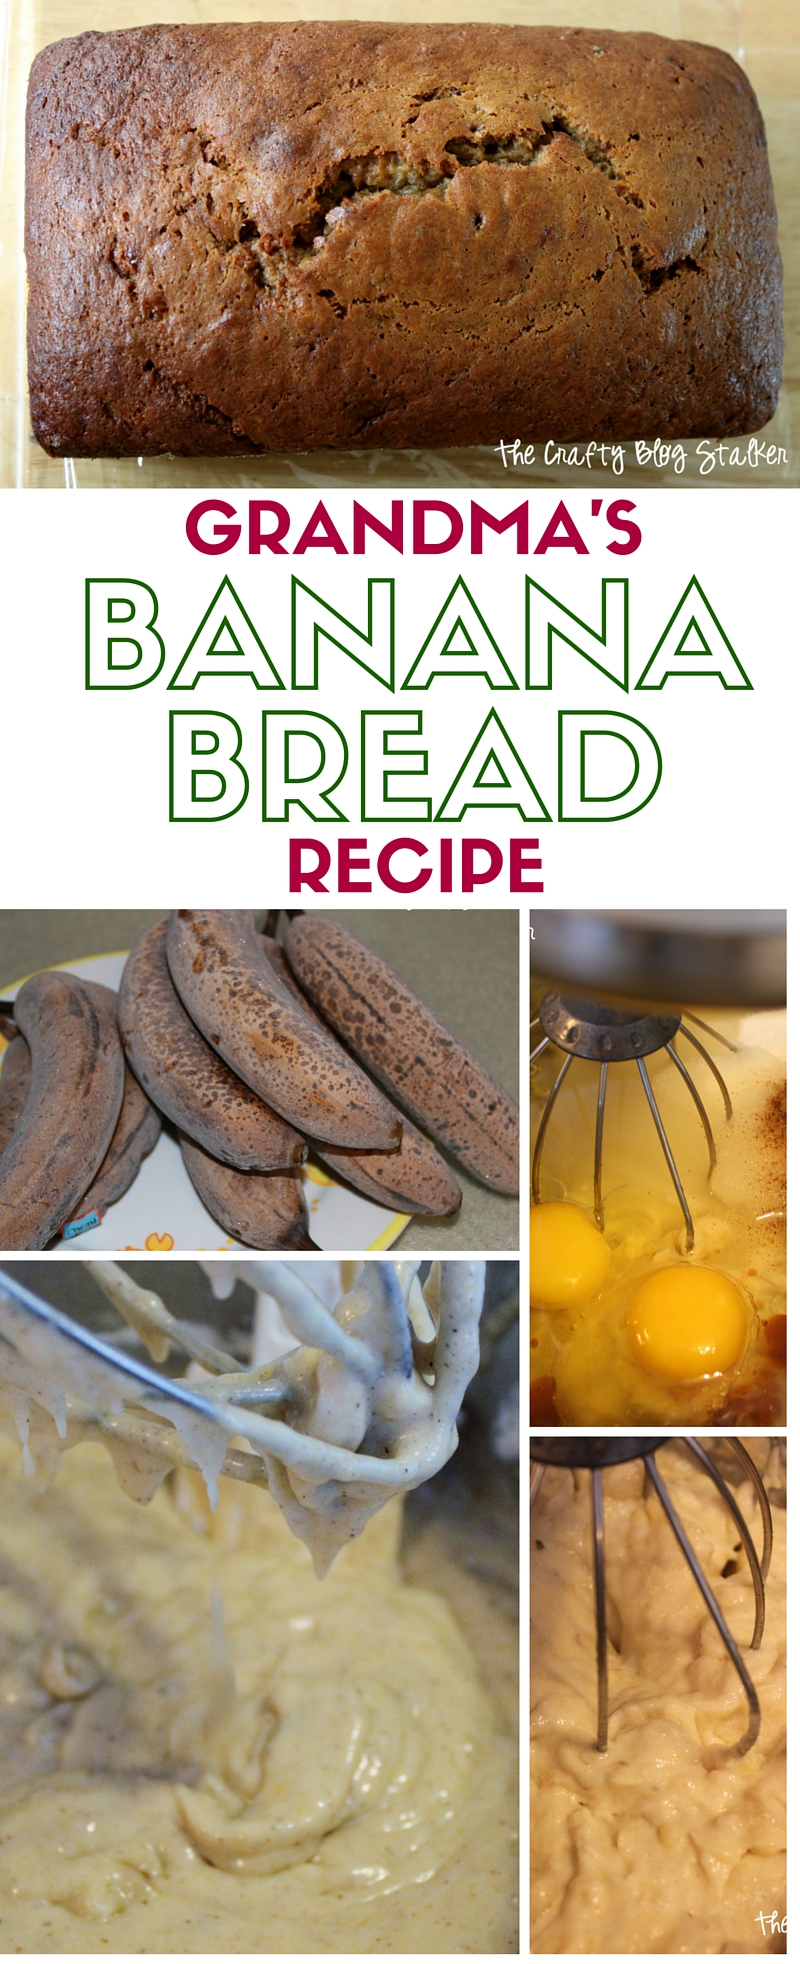 Grandma's Banana Bread Recipe | The Best Banana Bread | Easy Recipes